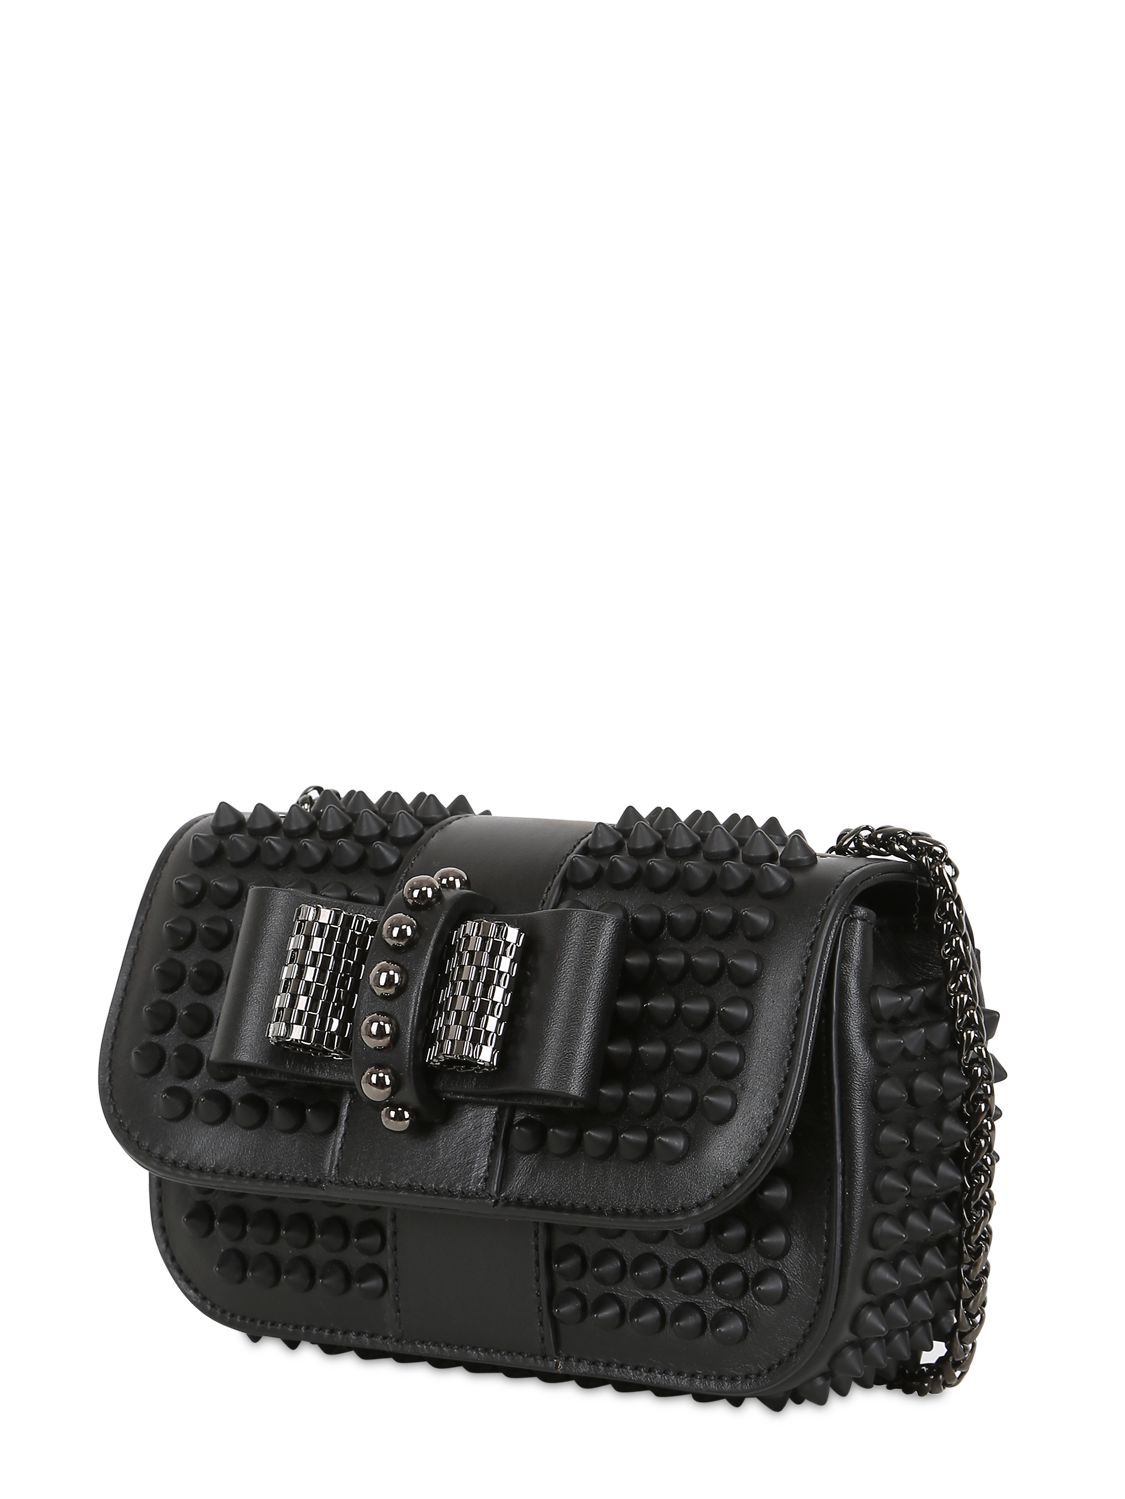 Christian Louboutin Sweety Charity Spikes Leather Bag in Black